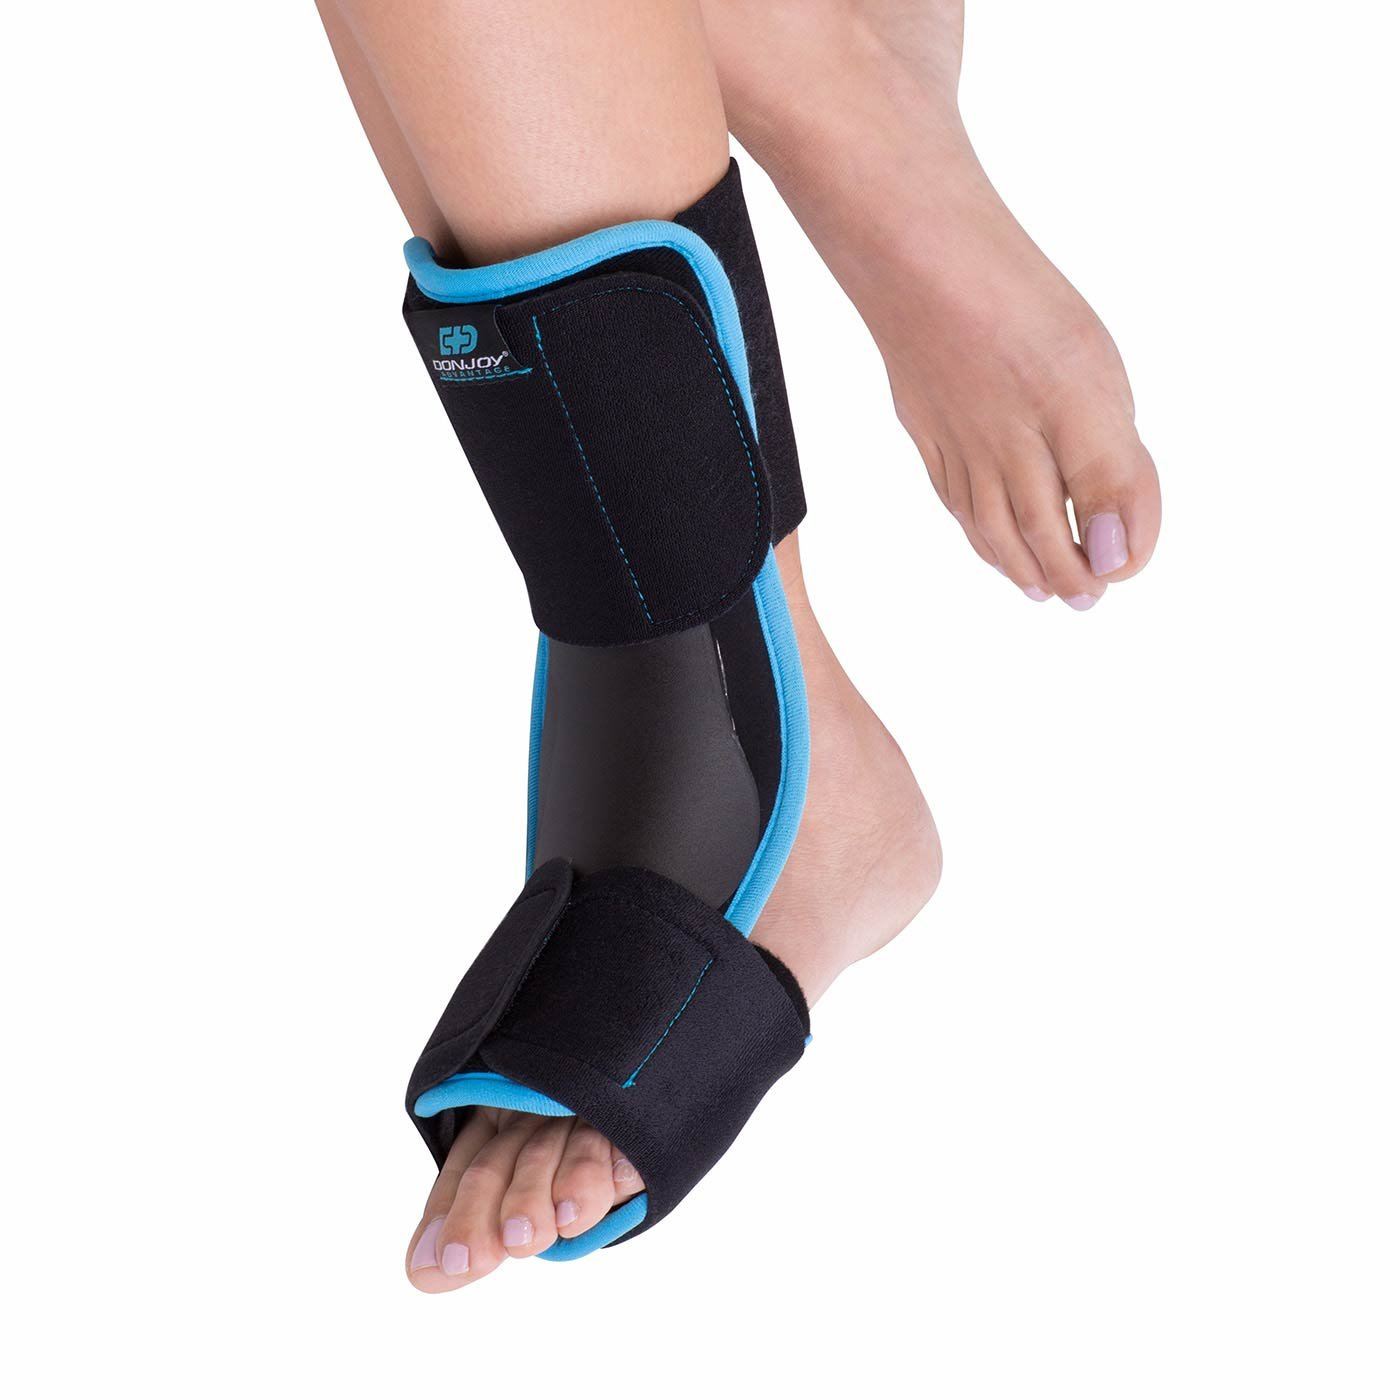 DonJoy Advantage DA161FB01-BLK-S/M Plantar Fasciitis Night Splint, Rigid Support for Maximum Stretch, Pain Relief, Achilles Tendonitis, Lightweight